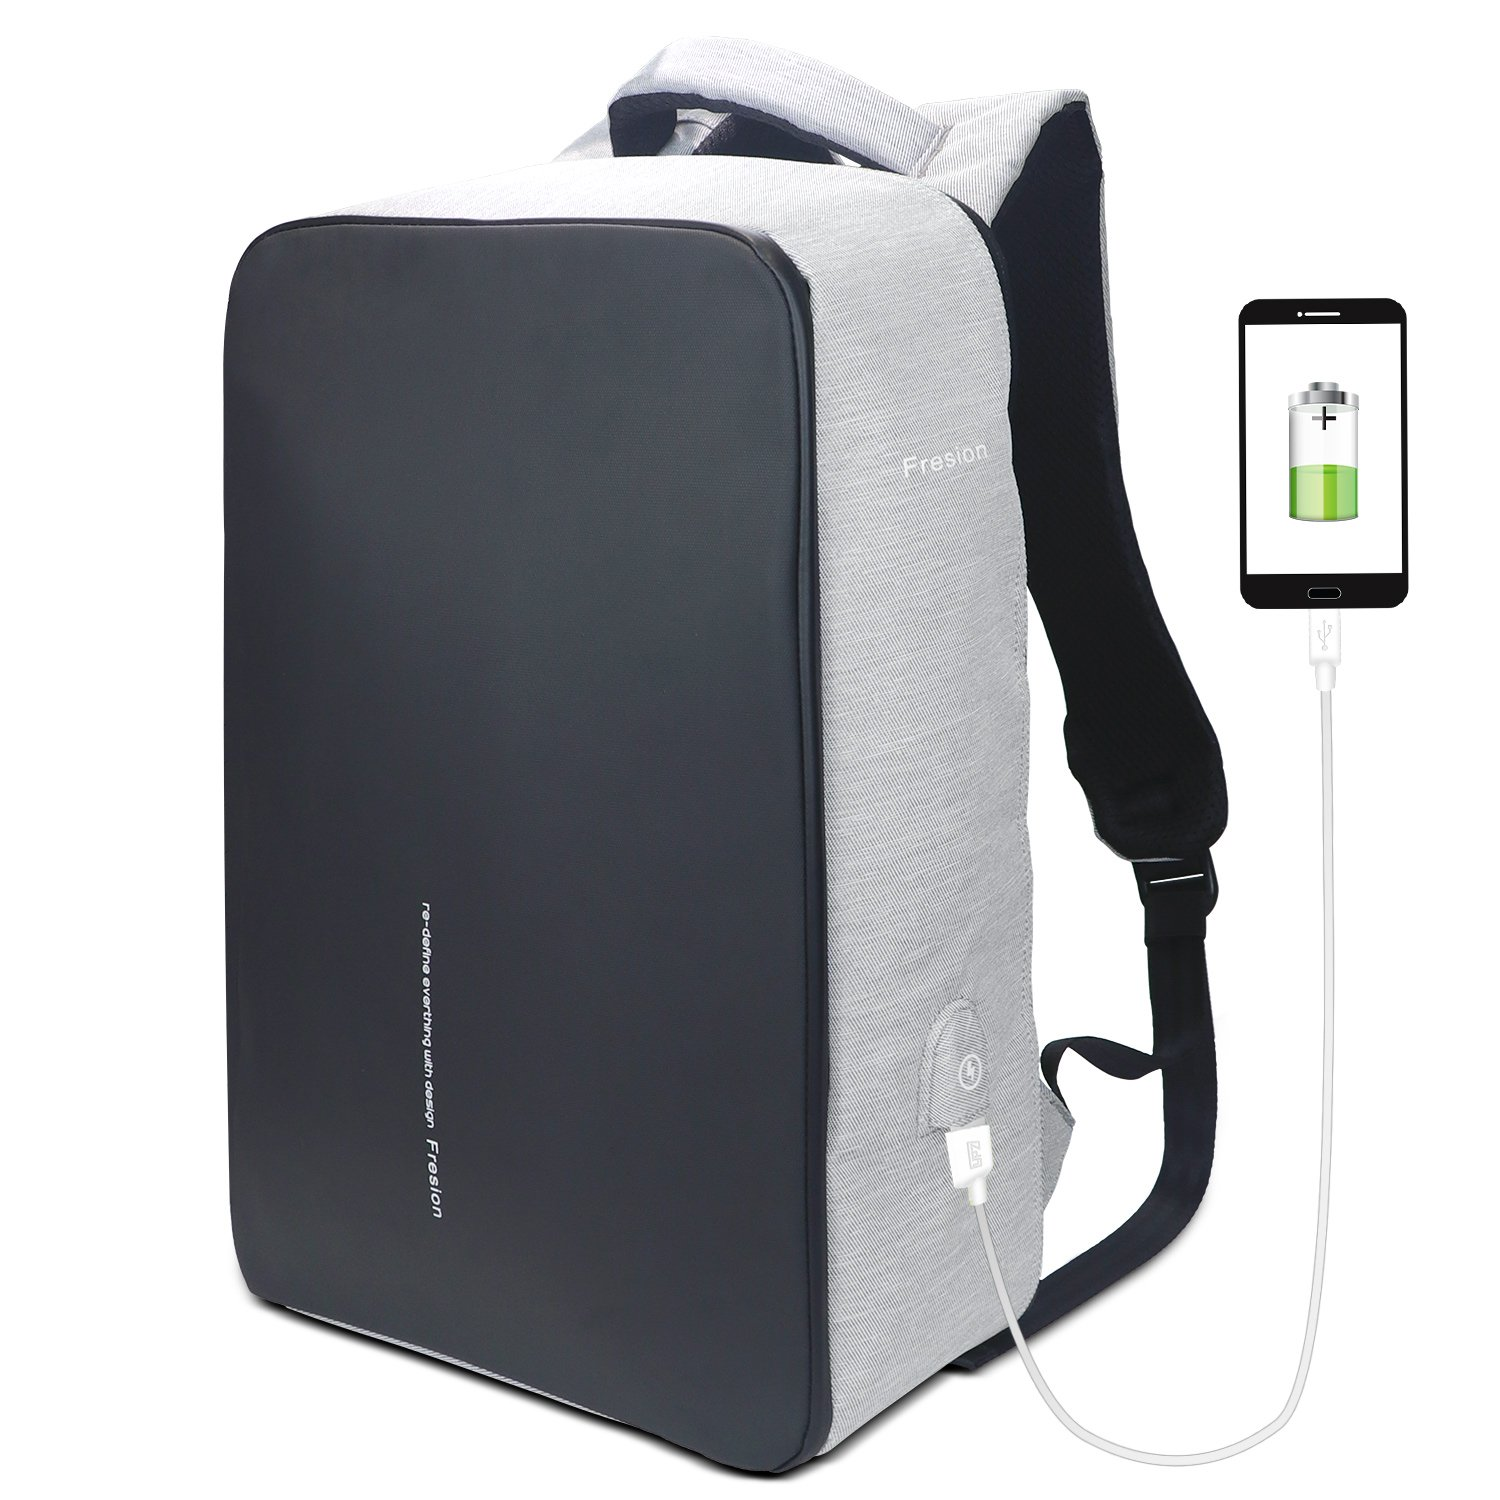 Fresion Business Laptop Backpack 15.6 inch with USB Charging Port Water Resistant Travel Daypack College Bag for Men Women 45 x 32 x 16cm (Grey)